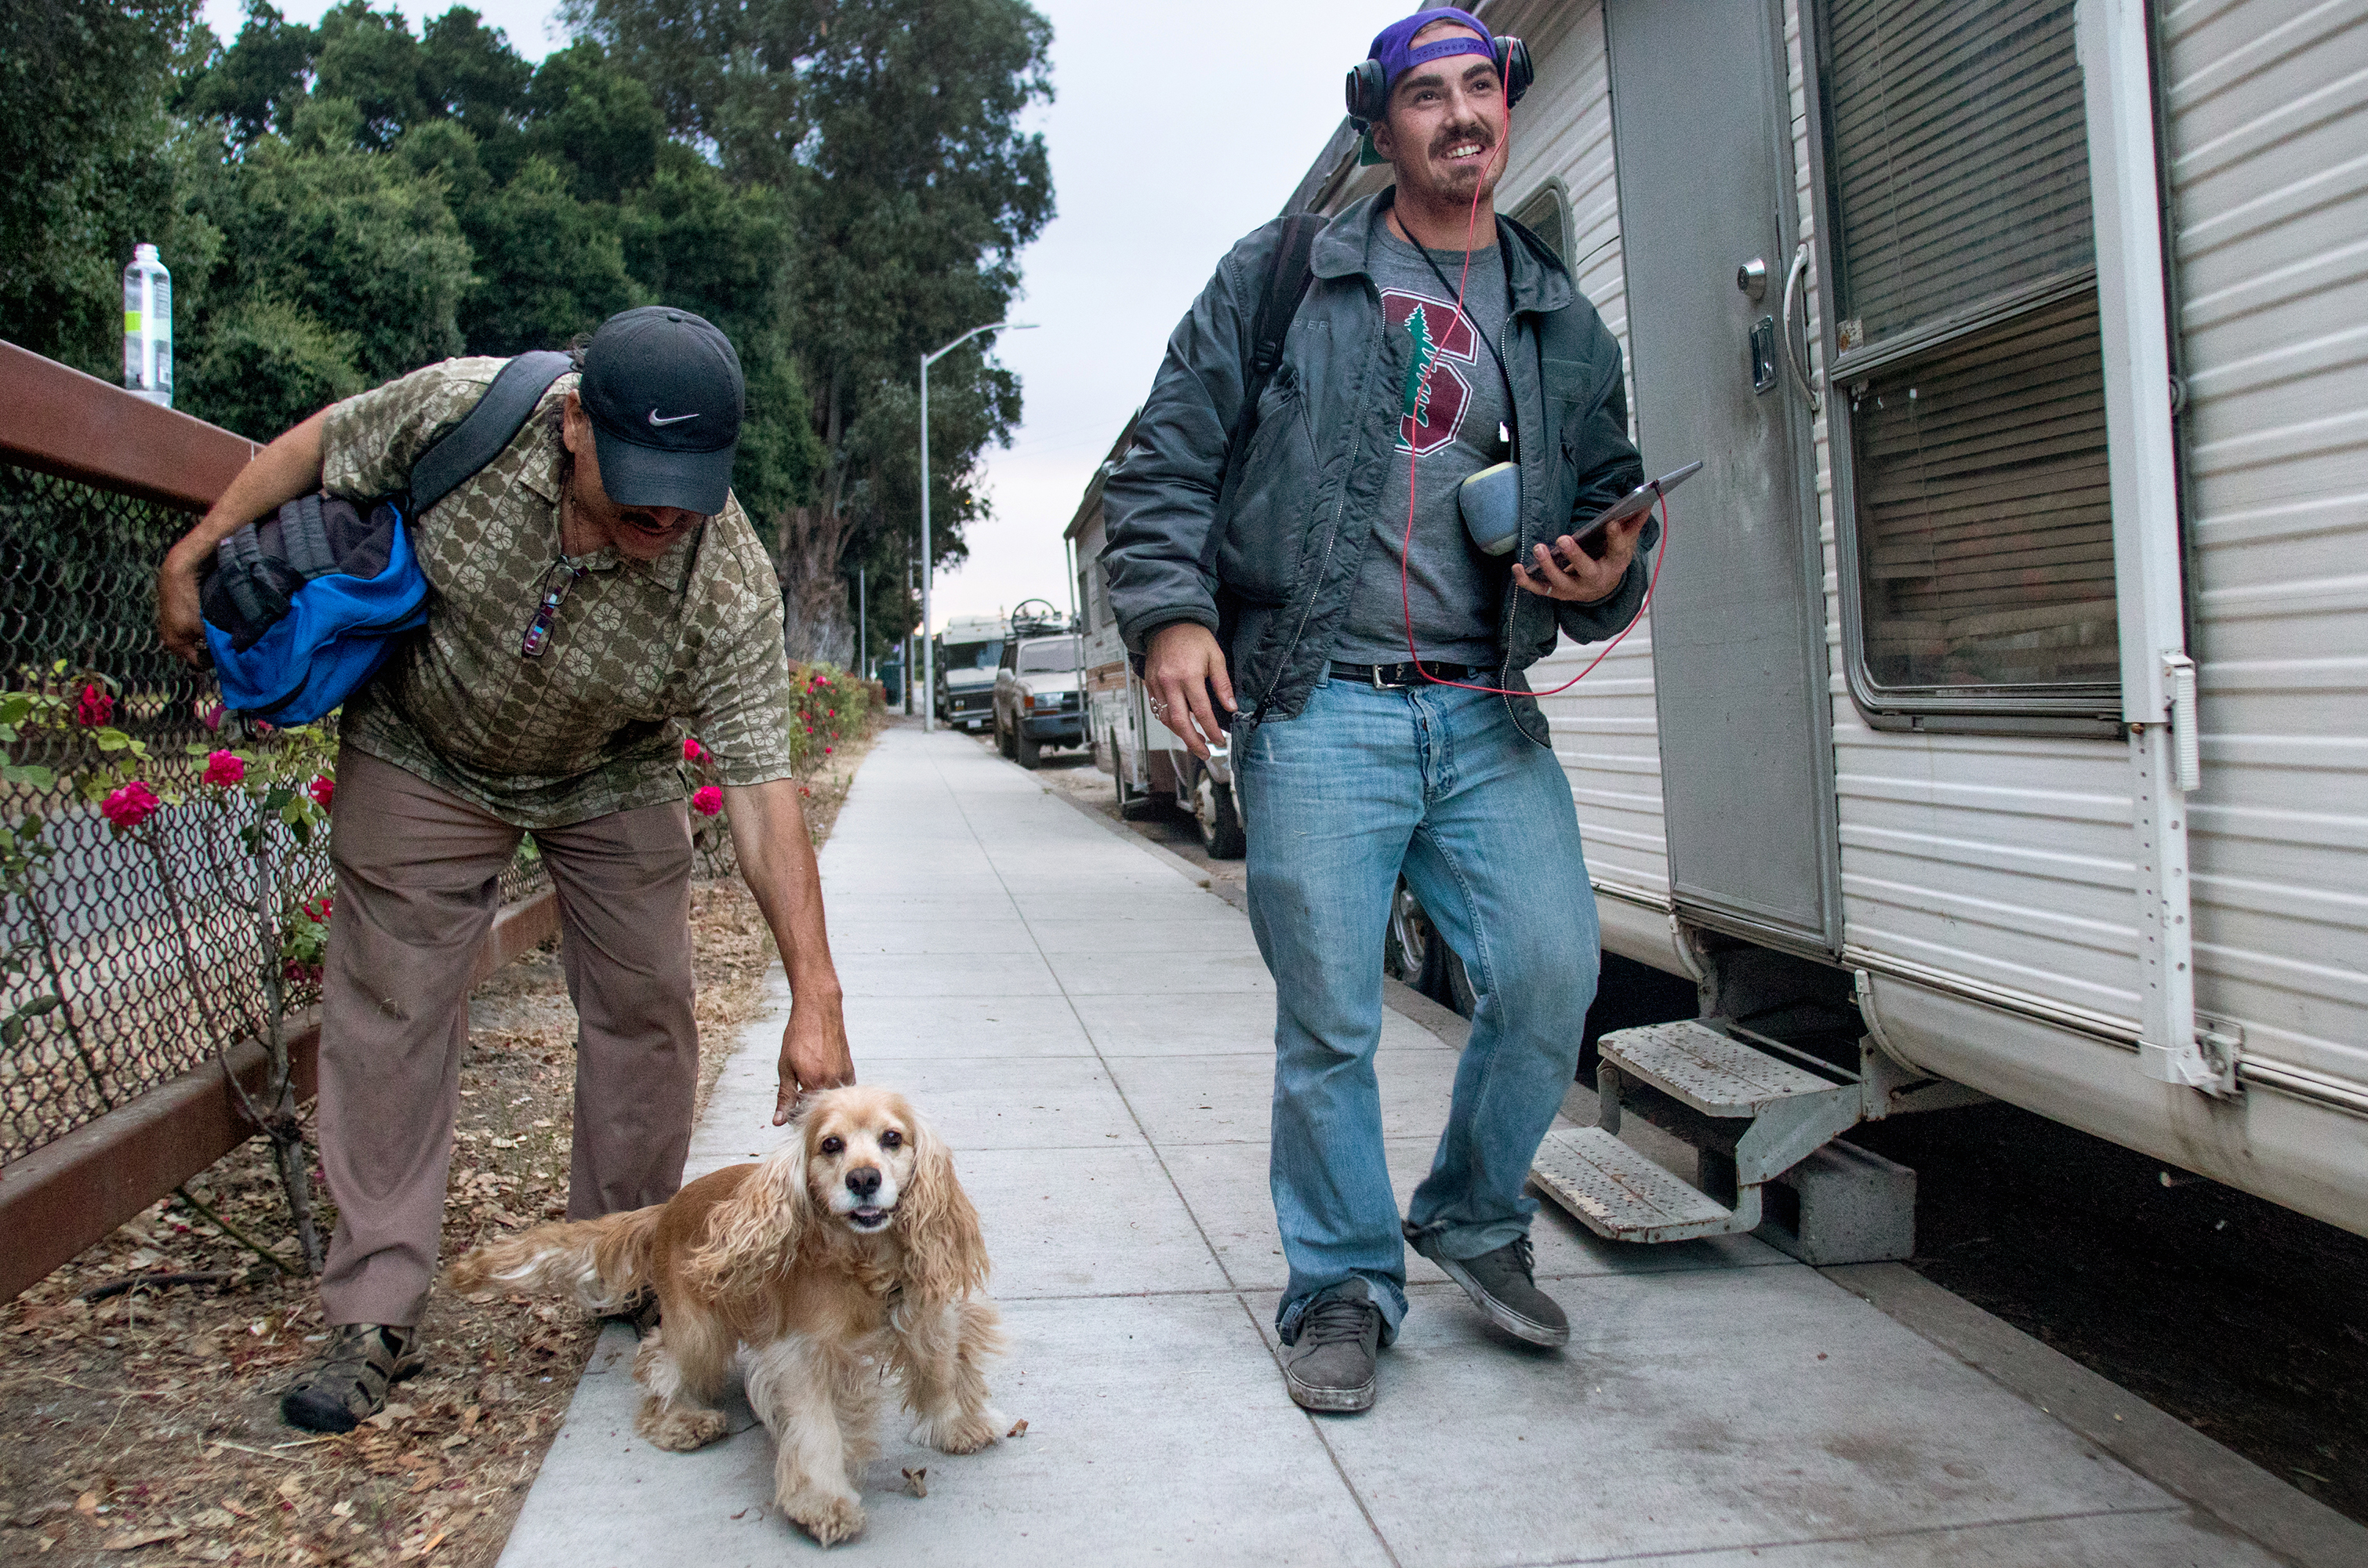 Aleman Cruz Francisco, left, with his dog, Galaxy, and Jacob Tyo, right, step outside of the RVs they occupy on El Camino Real.